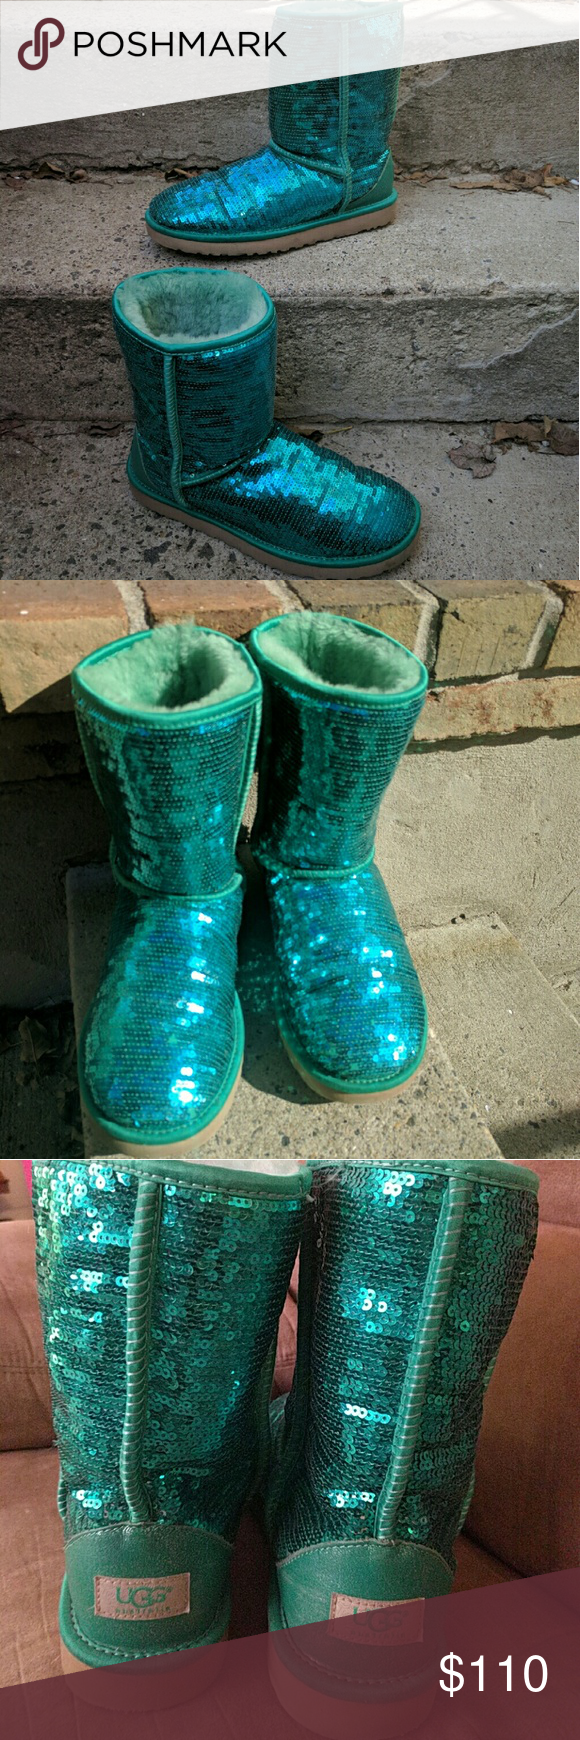 9bb65393395 Green sparkle UGGs, like new! Adorable green sequence sparkly ...